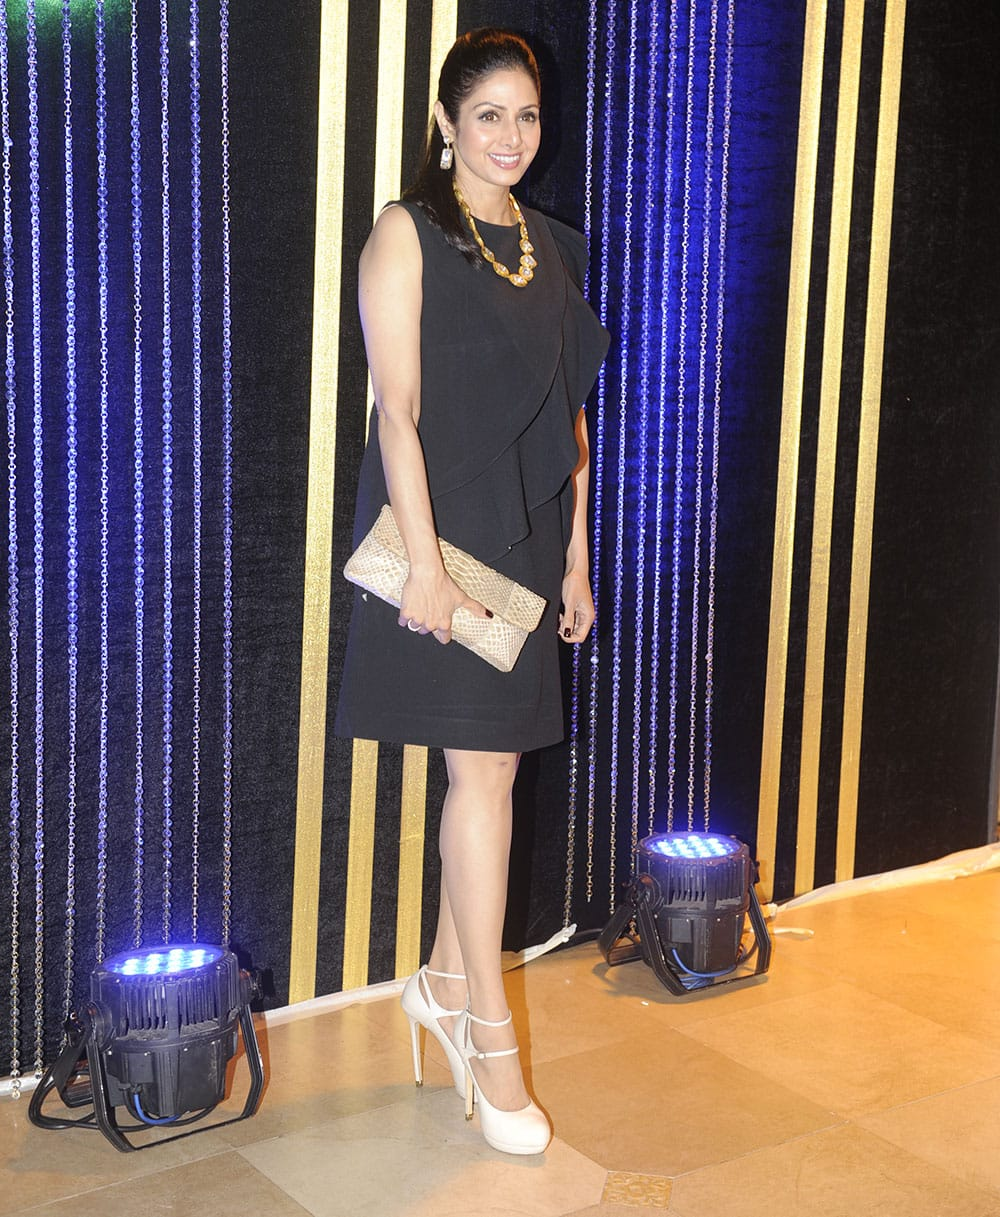 Sridevi at Rakesh Roshan's birthday bash in Mumbai. Pic Courtesy: DNA